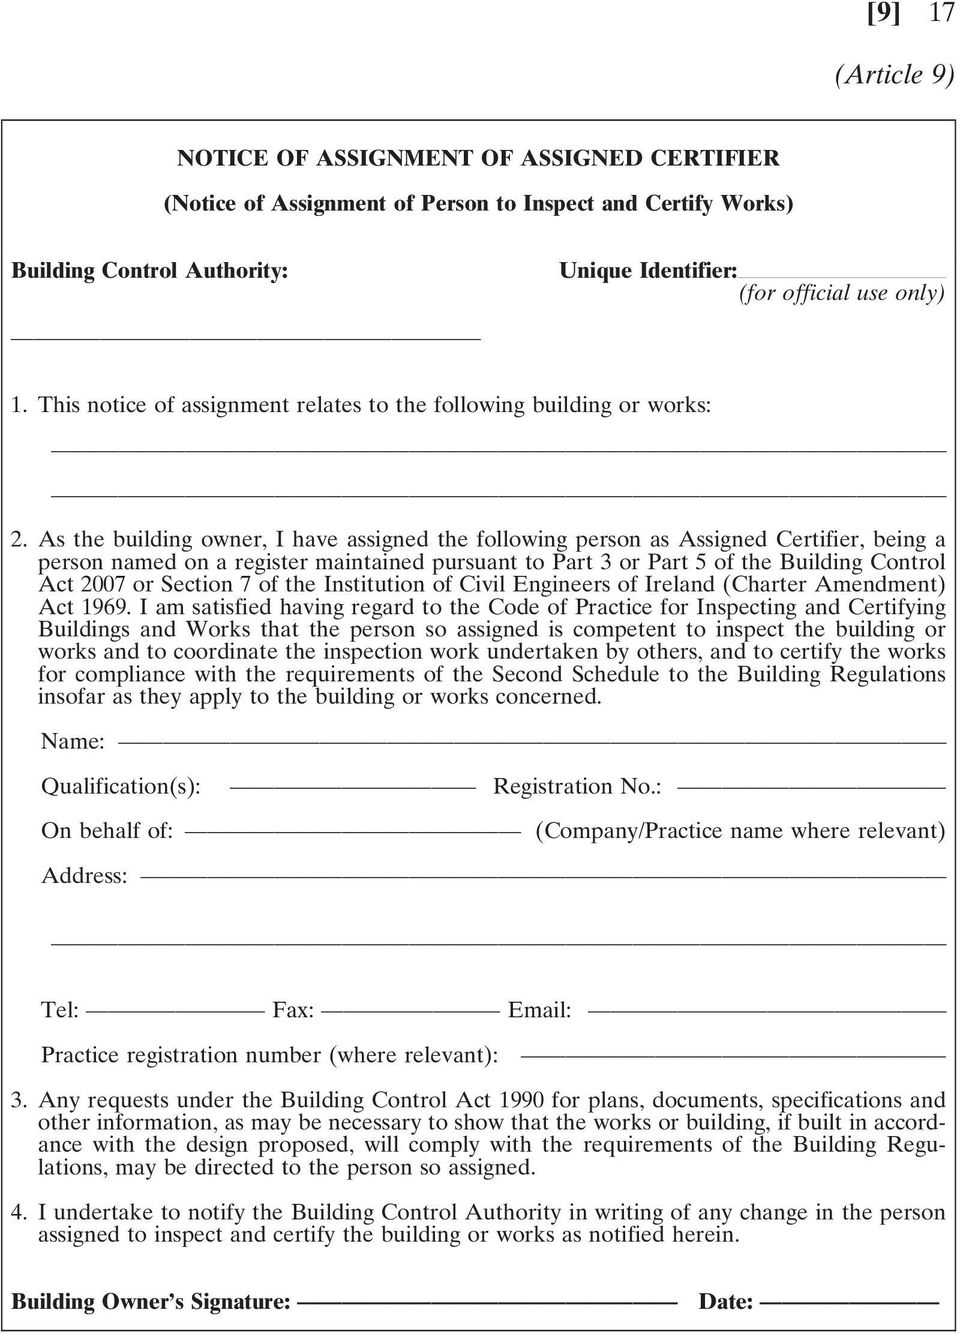 As the building owner, I have assigned the following person as Assigned Certifier, being a person named on a register maintained pursuant to Part 3 or Part 5 of the Building Control Act 2007 or